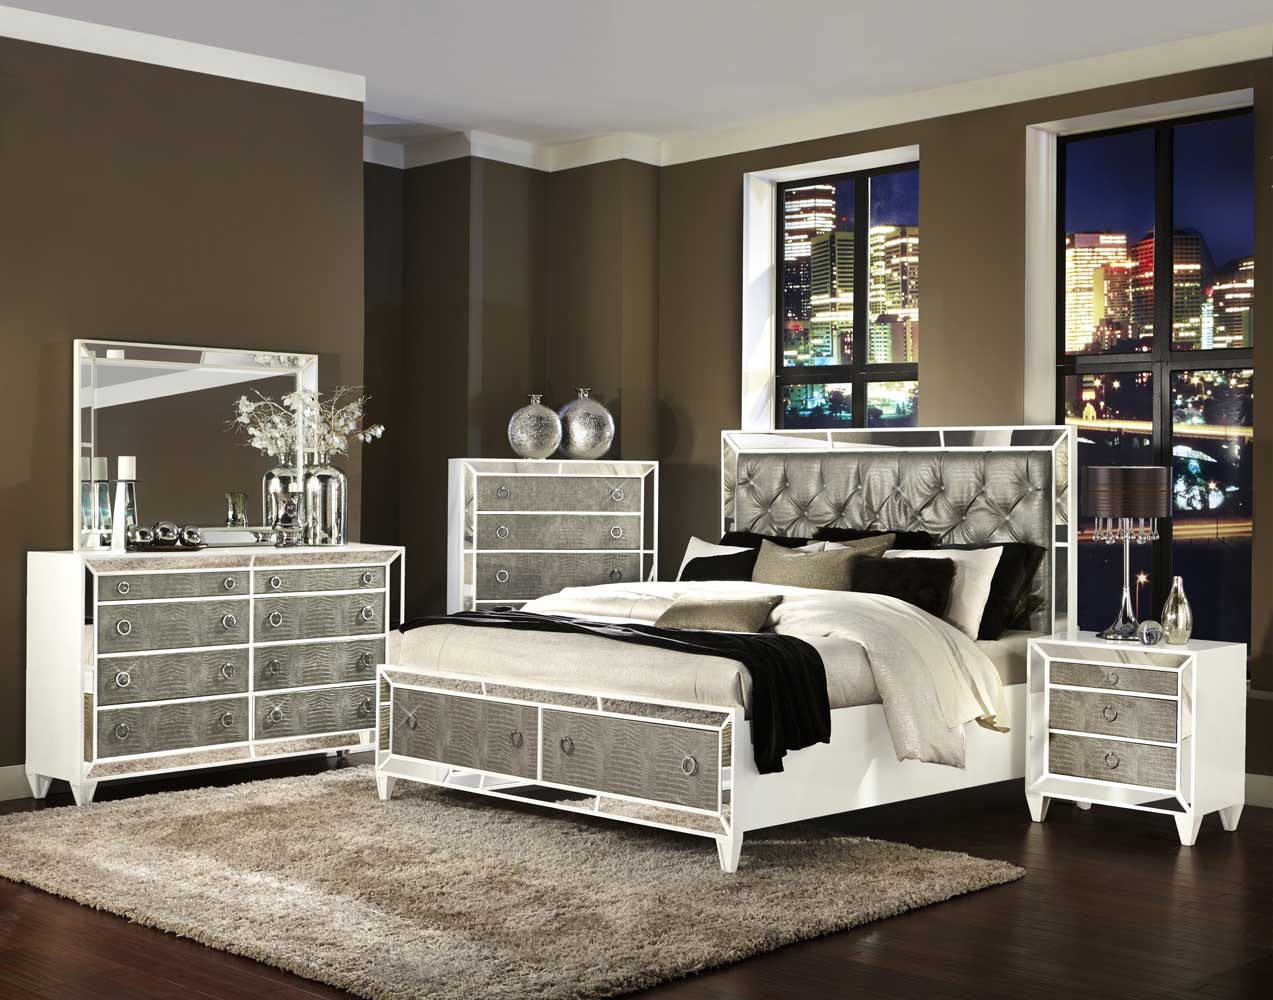 Monroe Storage Bedroom Set Pearlized White